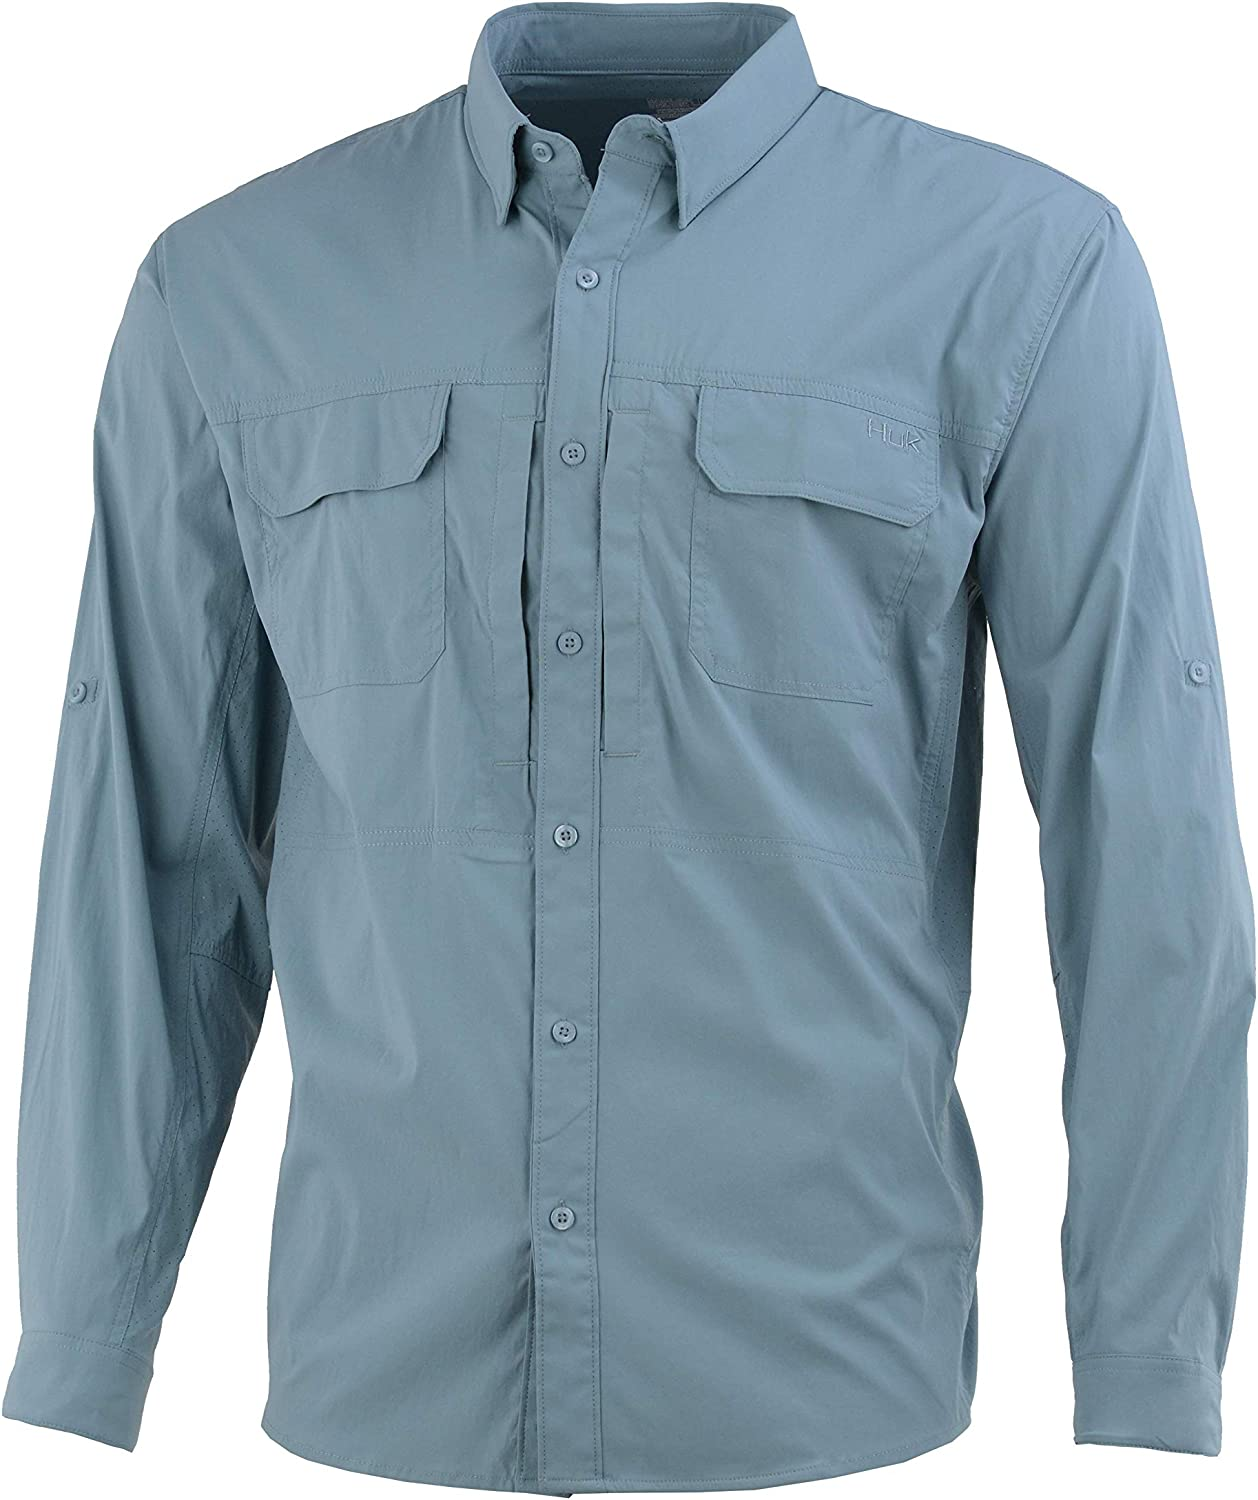 HUK Men's Beaufort Button Down | Fishing Shirt with Sun Protection